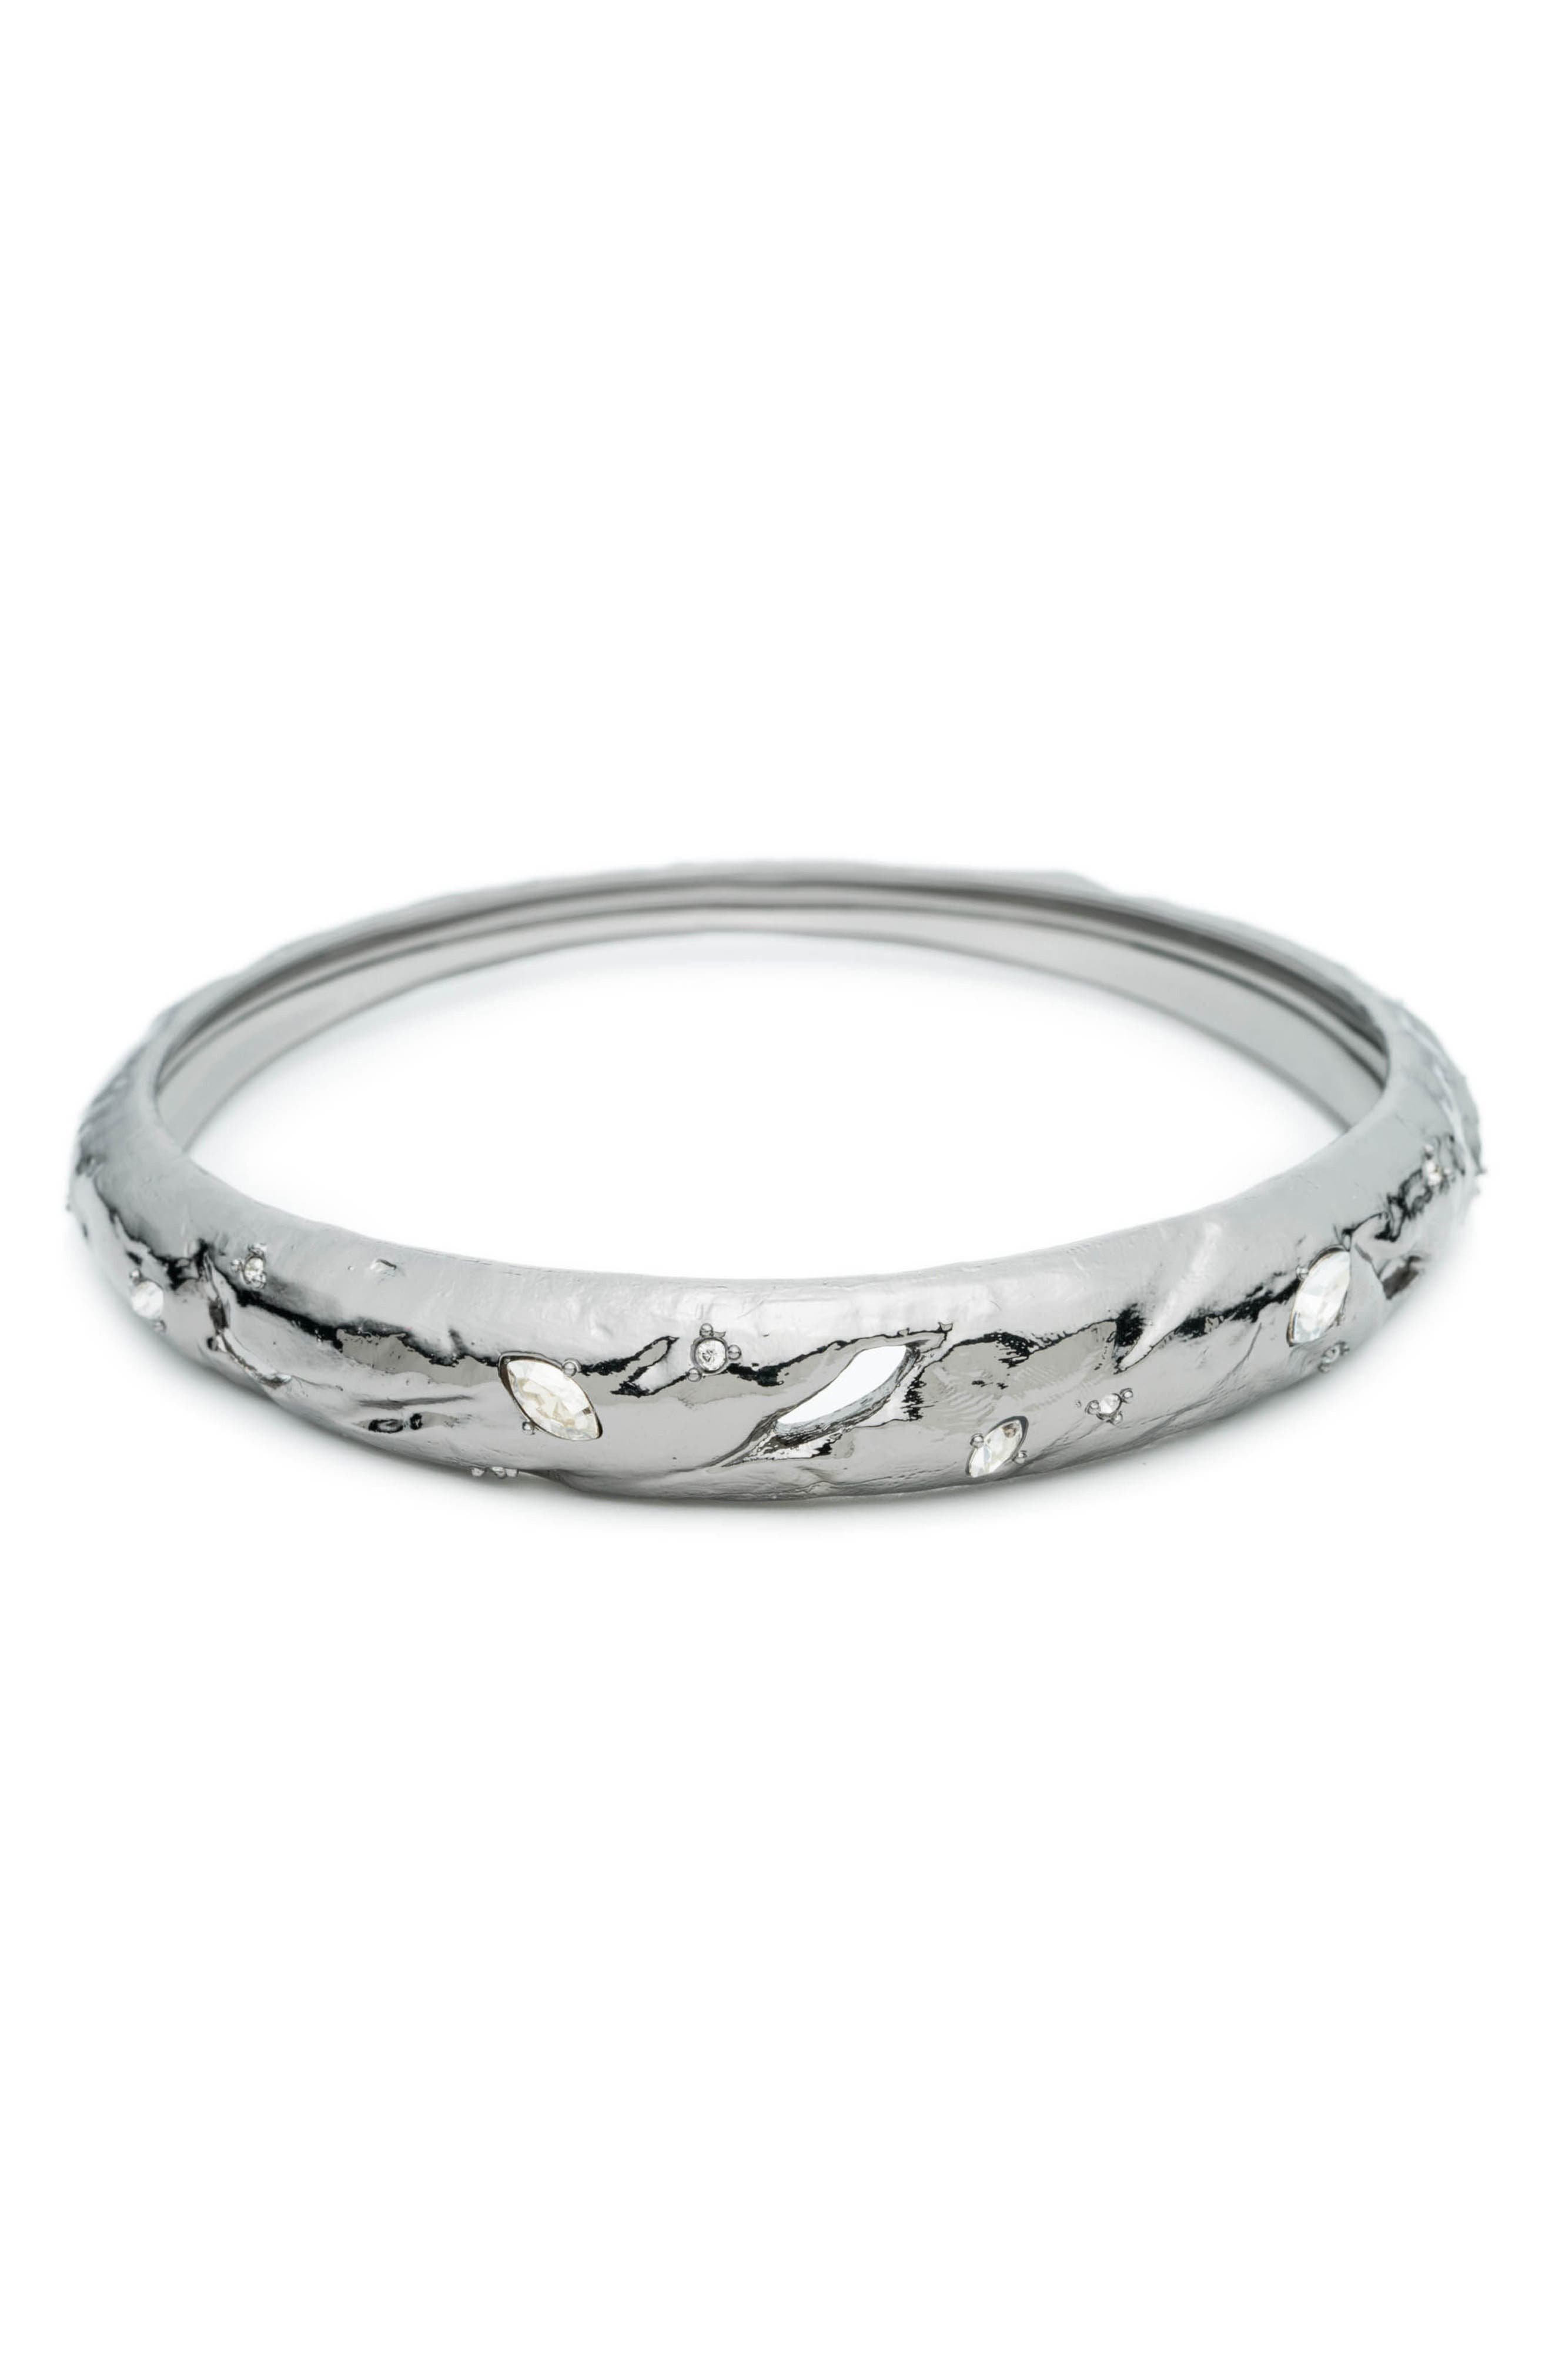 Crystal Elements Bangle,                             Main thumbnail 1, color,                             SILVER